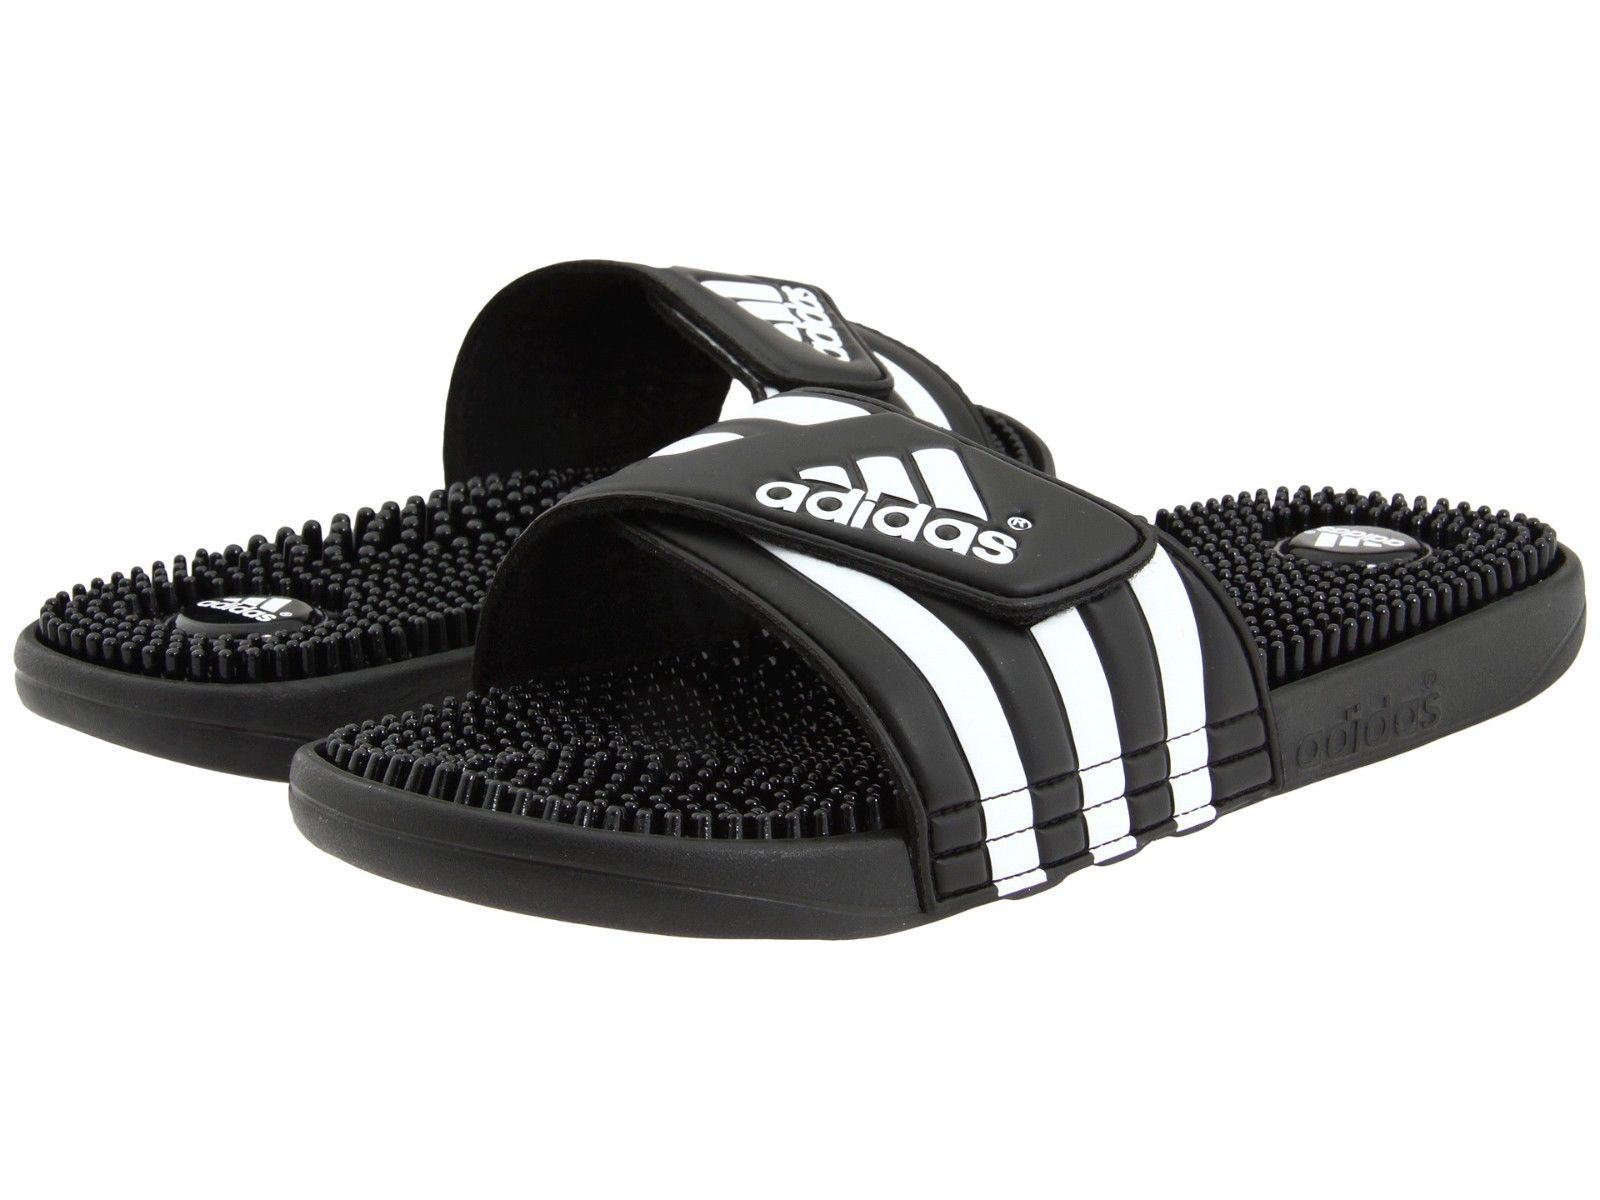 Mens Adidas Adissage Black Slides Shower Sandals Athletic Sport 078260 Sz 6-15  Item specifics Condition  New with box  A brand-new unused and unworn item  ... b6186cdb0